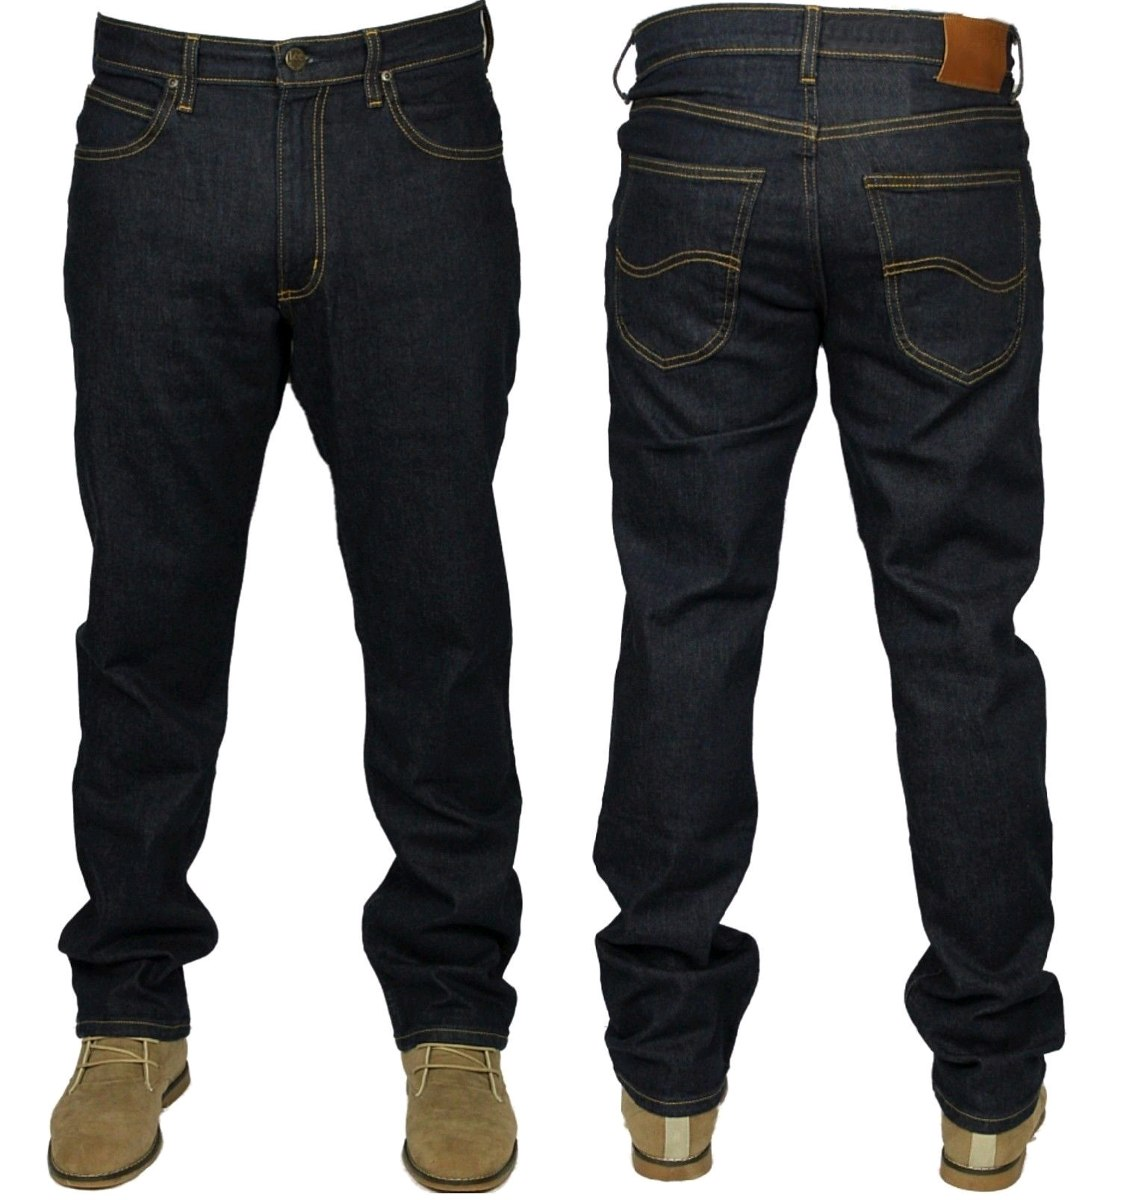 Find great deals on eBay for pantalones jeans. Shop with confidence.